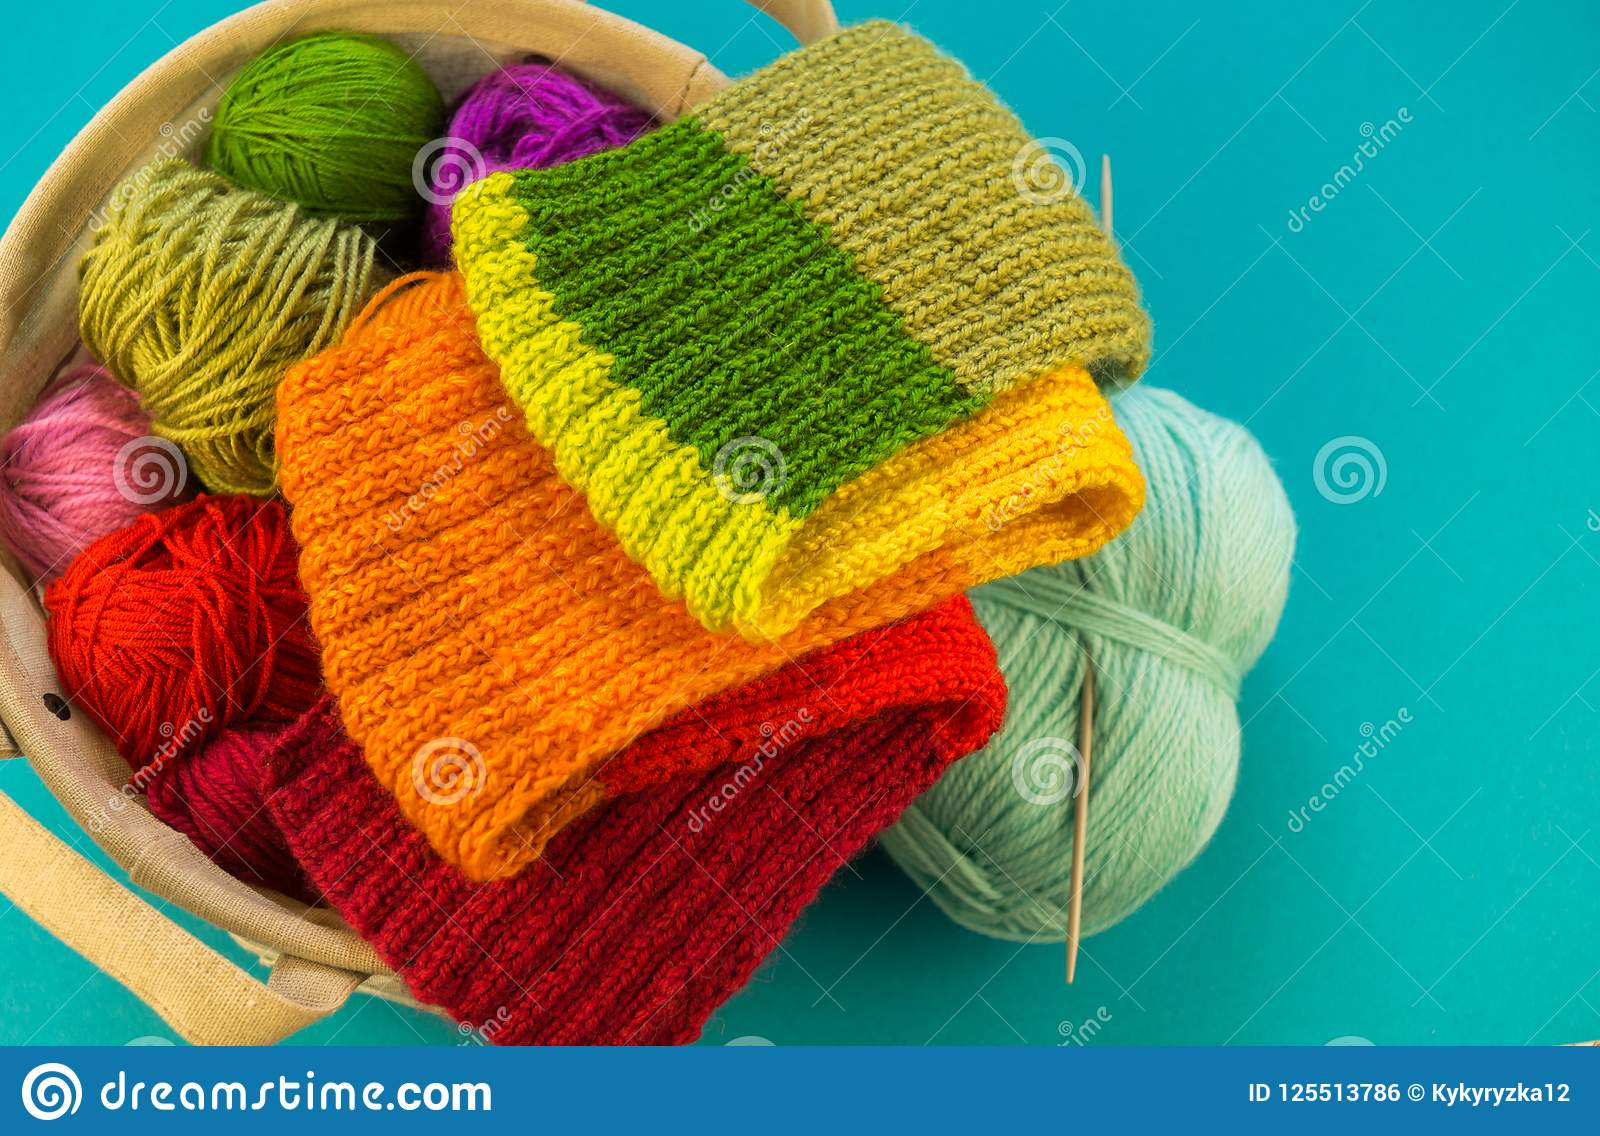 Knitting a rainbow scarf and hat Blue background